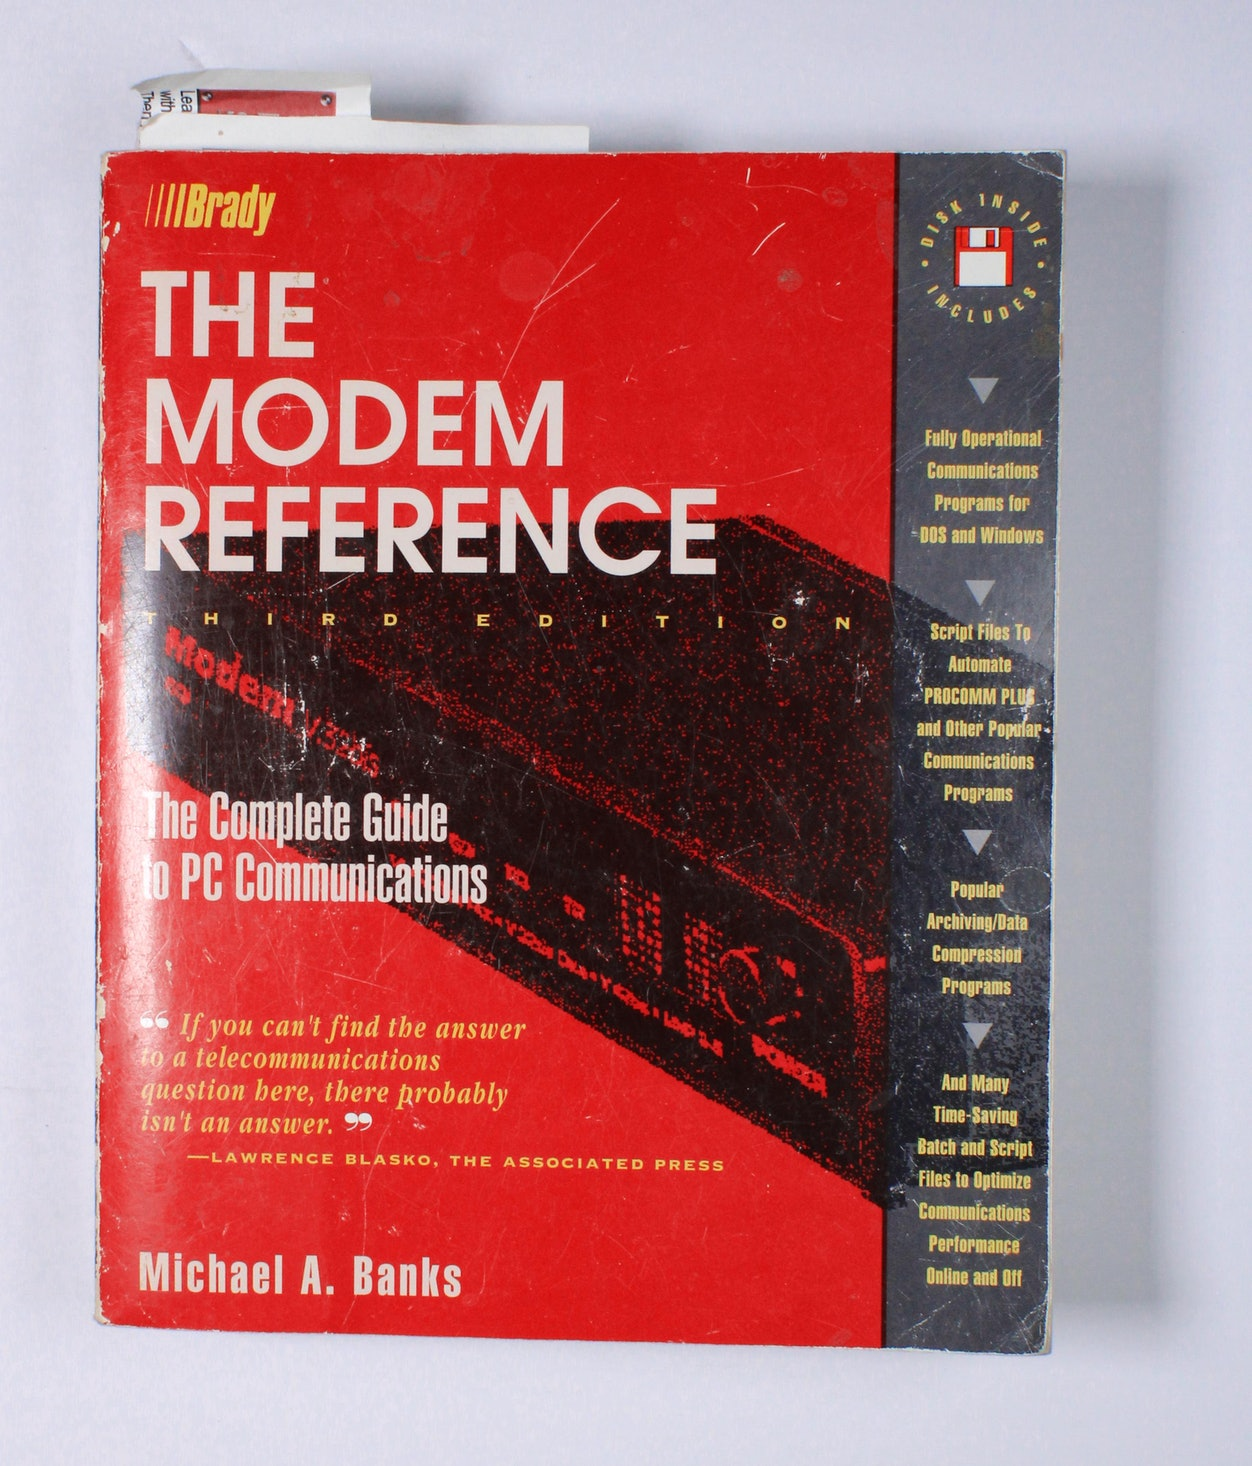 The Modem Reference: The Complete Guide to PC Communications